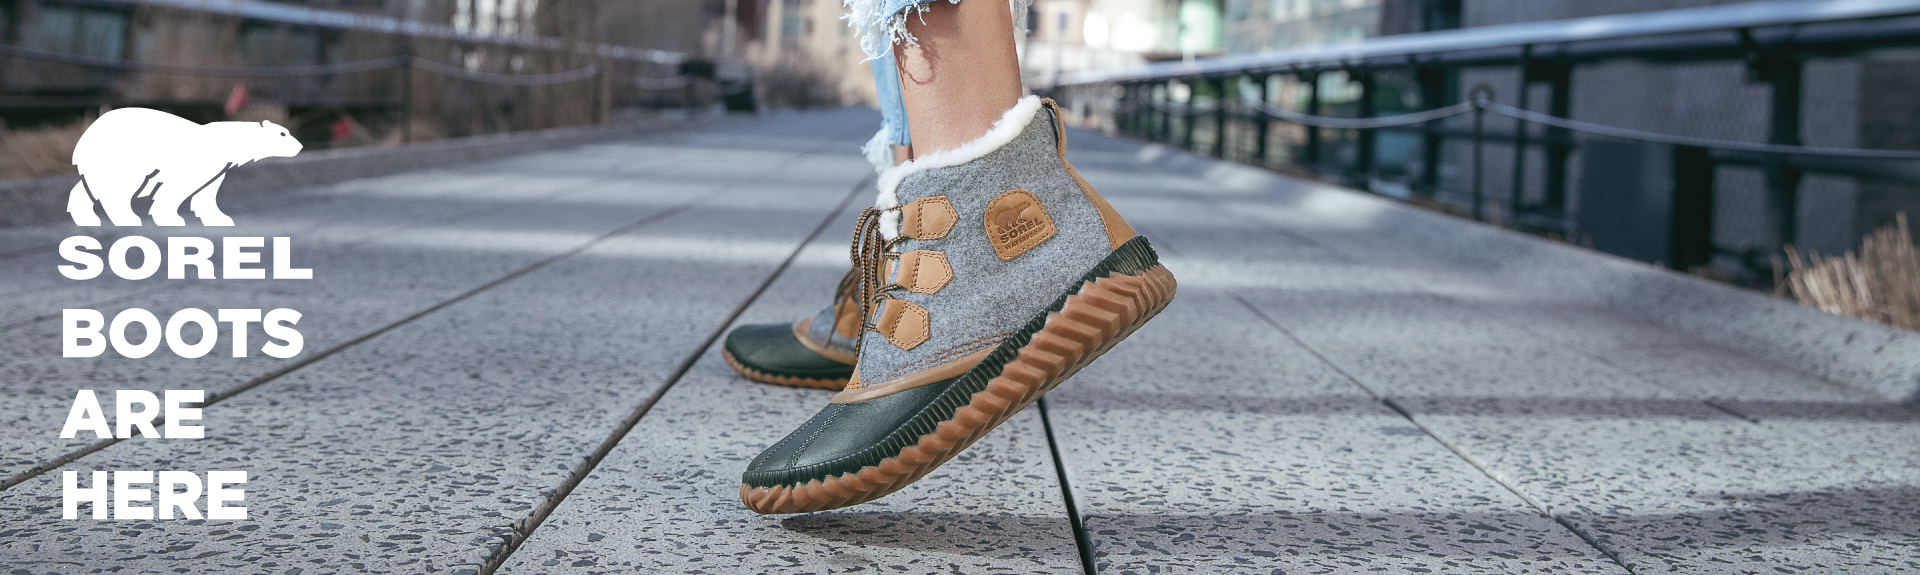 Sorel Boots Are Here - Shop Now!